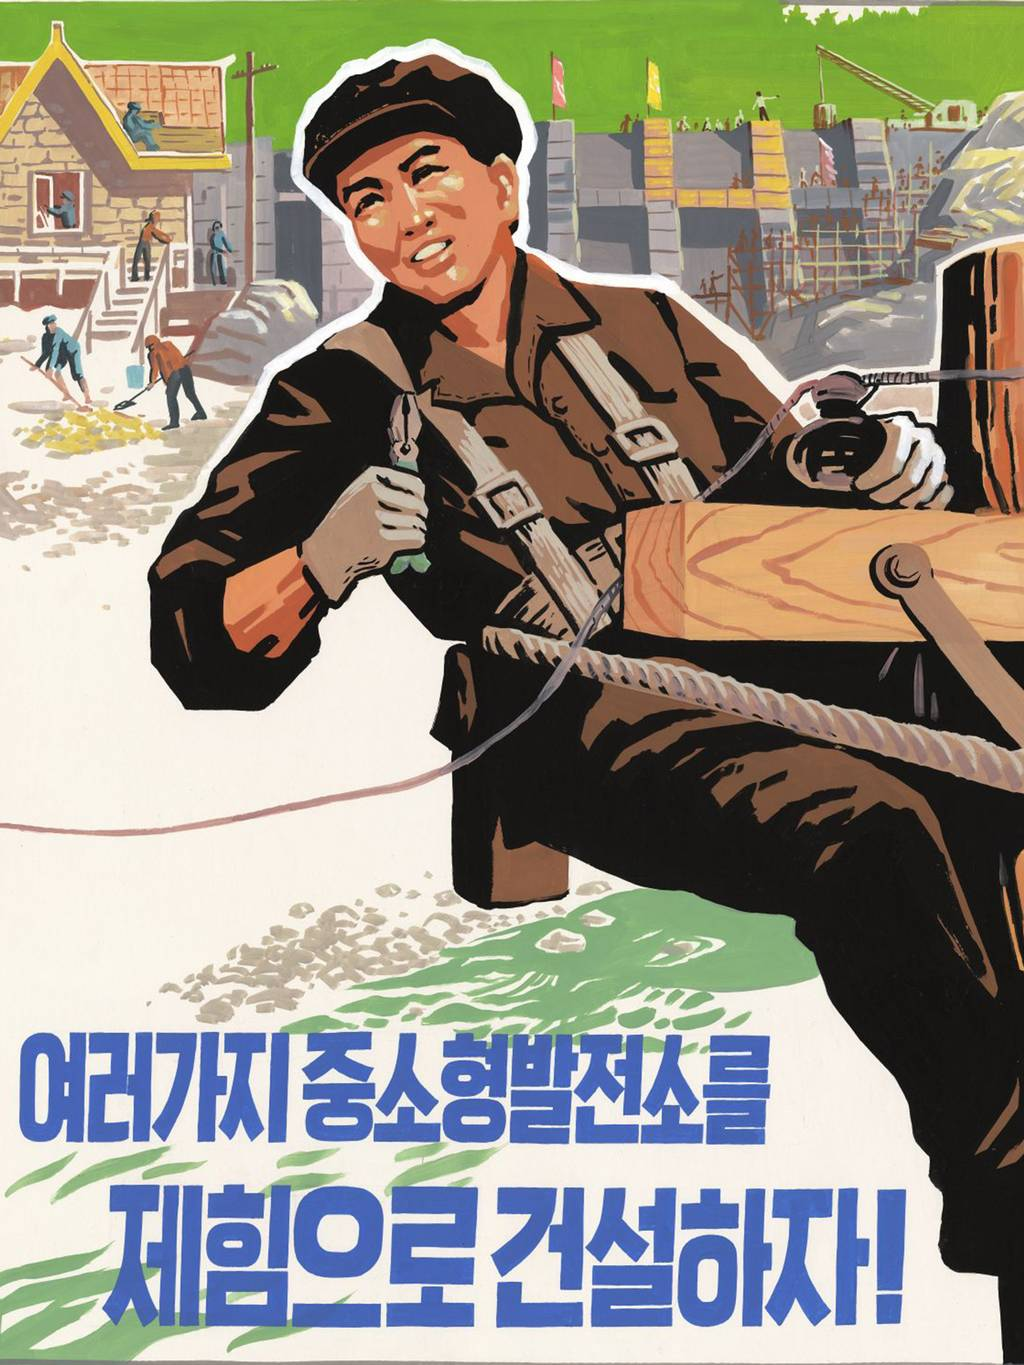 Rare North Korea Propoganda Posters Go On Display For First Time PsyEYKu5enk poster 2.jpg